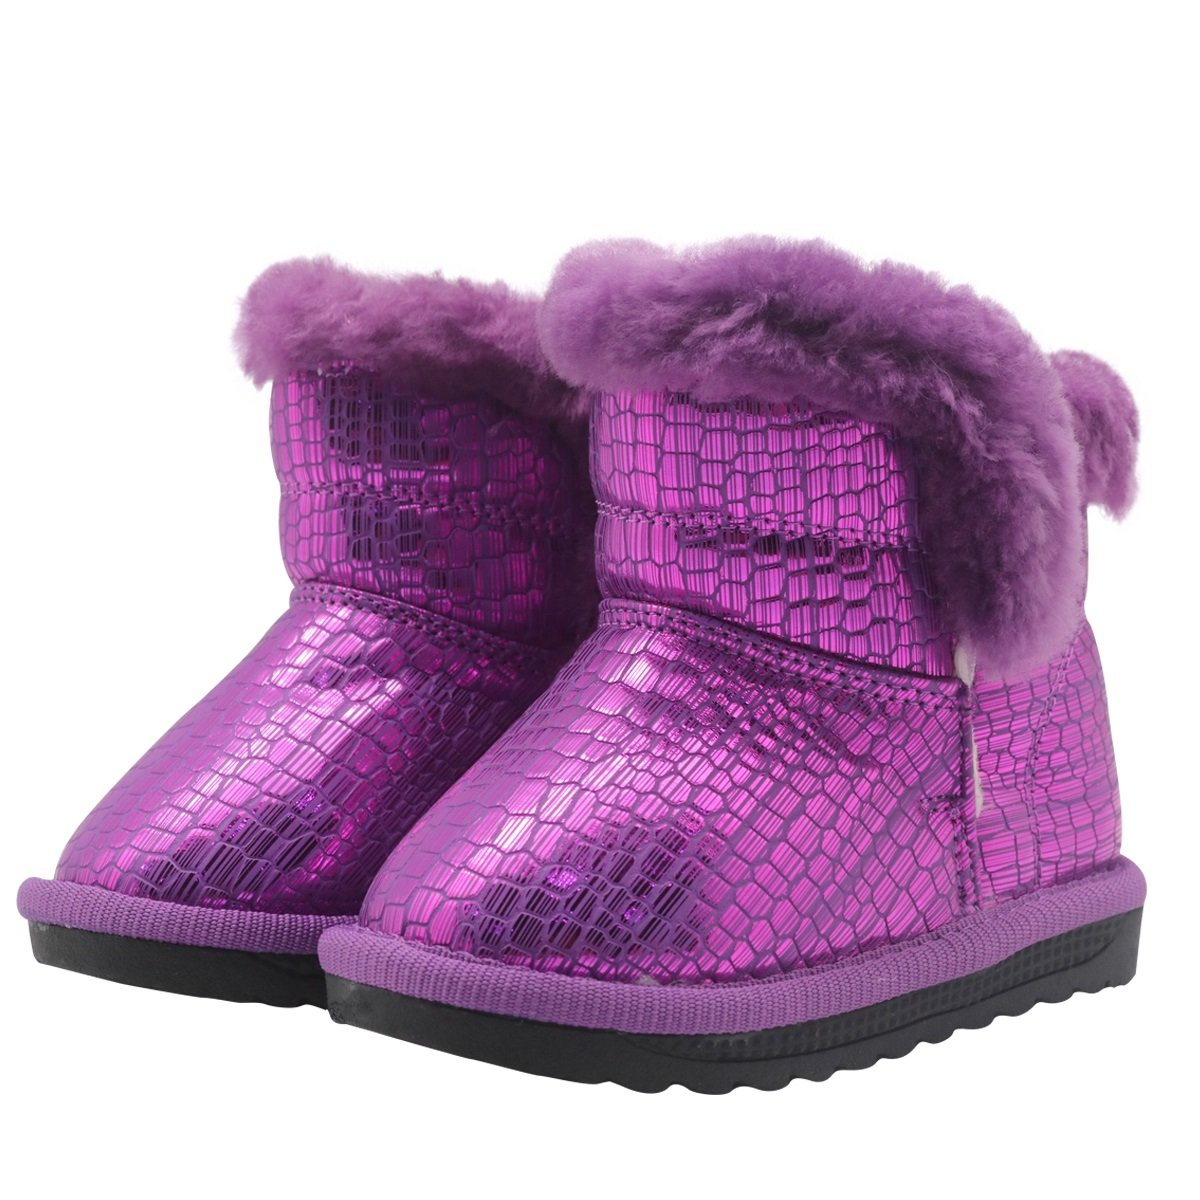 Non-Slip Toddler Shoes Girls Warm Winter Flat Shoes Fur Snow Boots with Woolen Lining Durable Color : Purple , Size : 9 M US Toddler